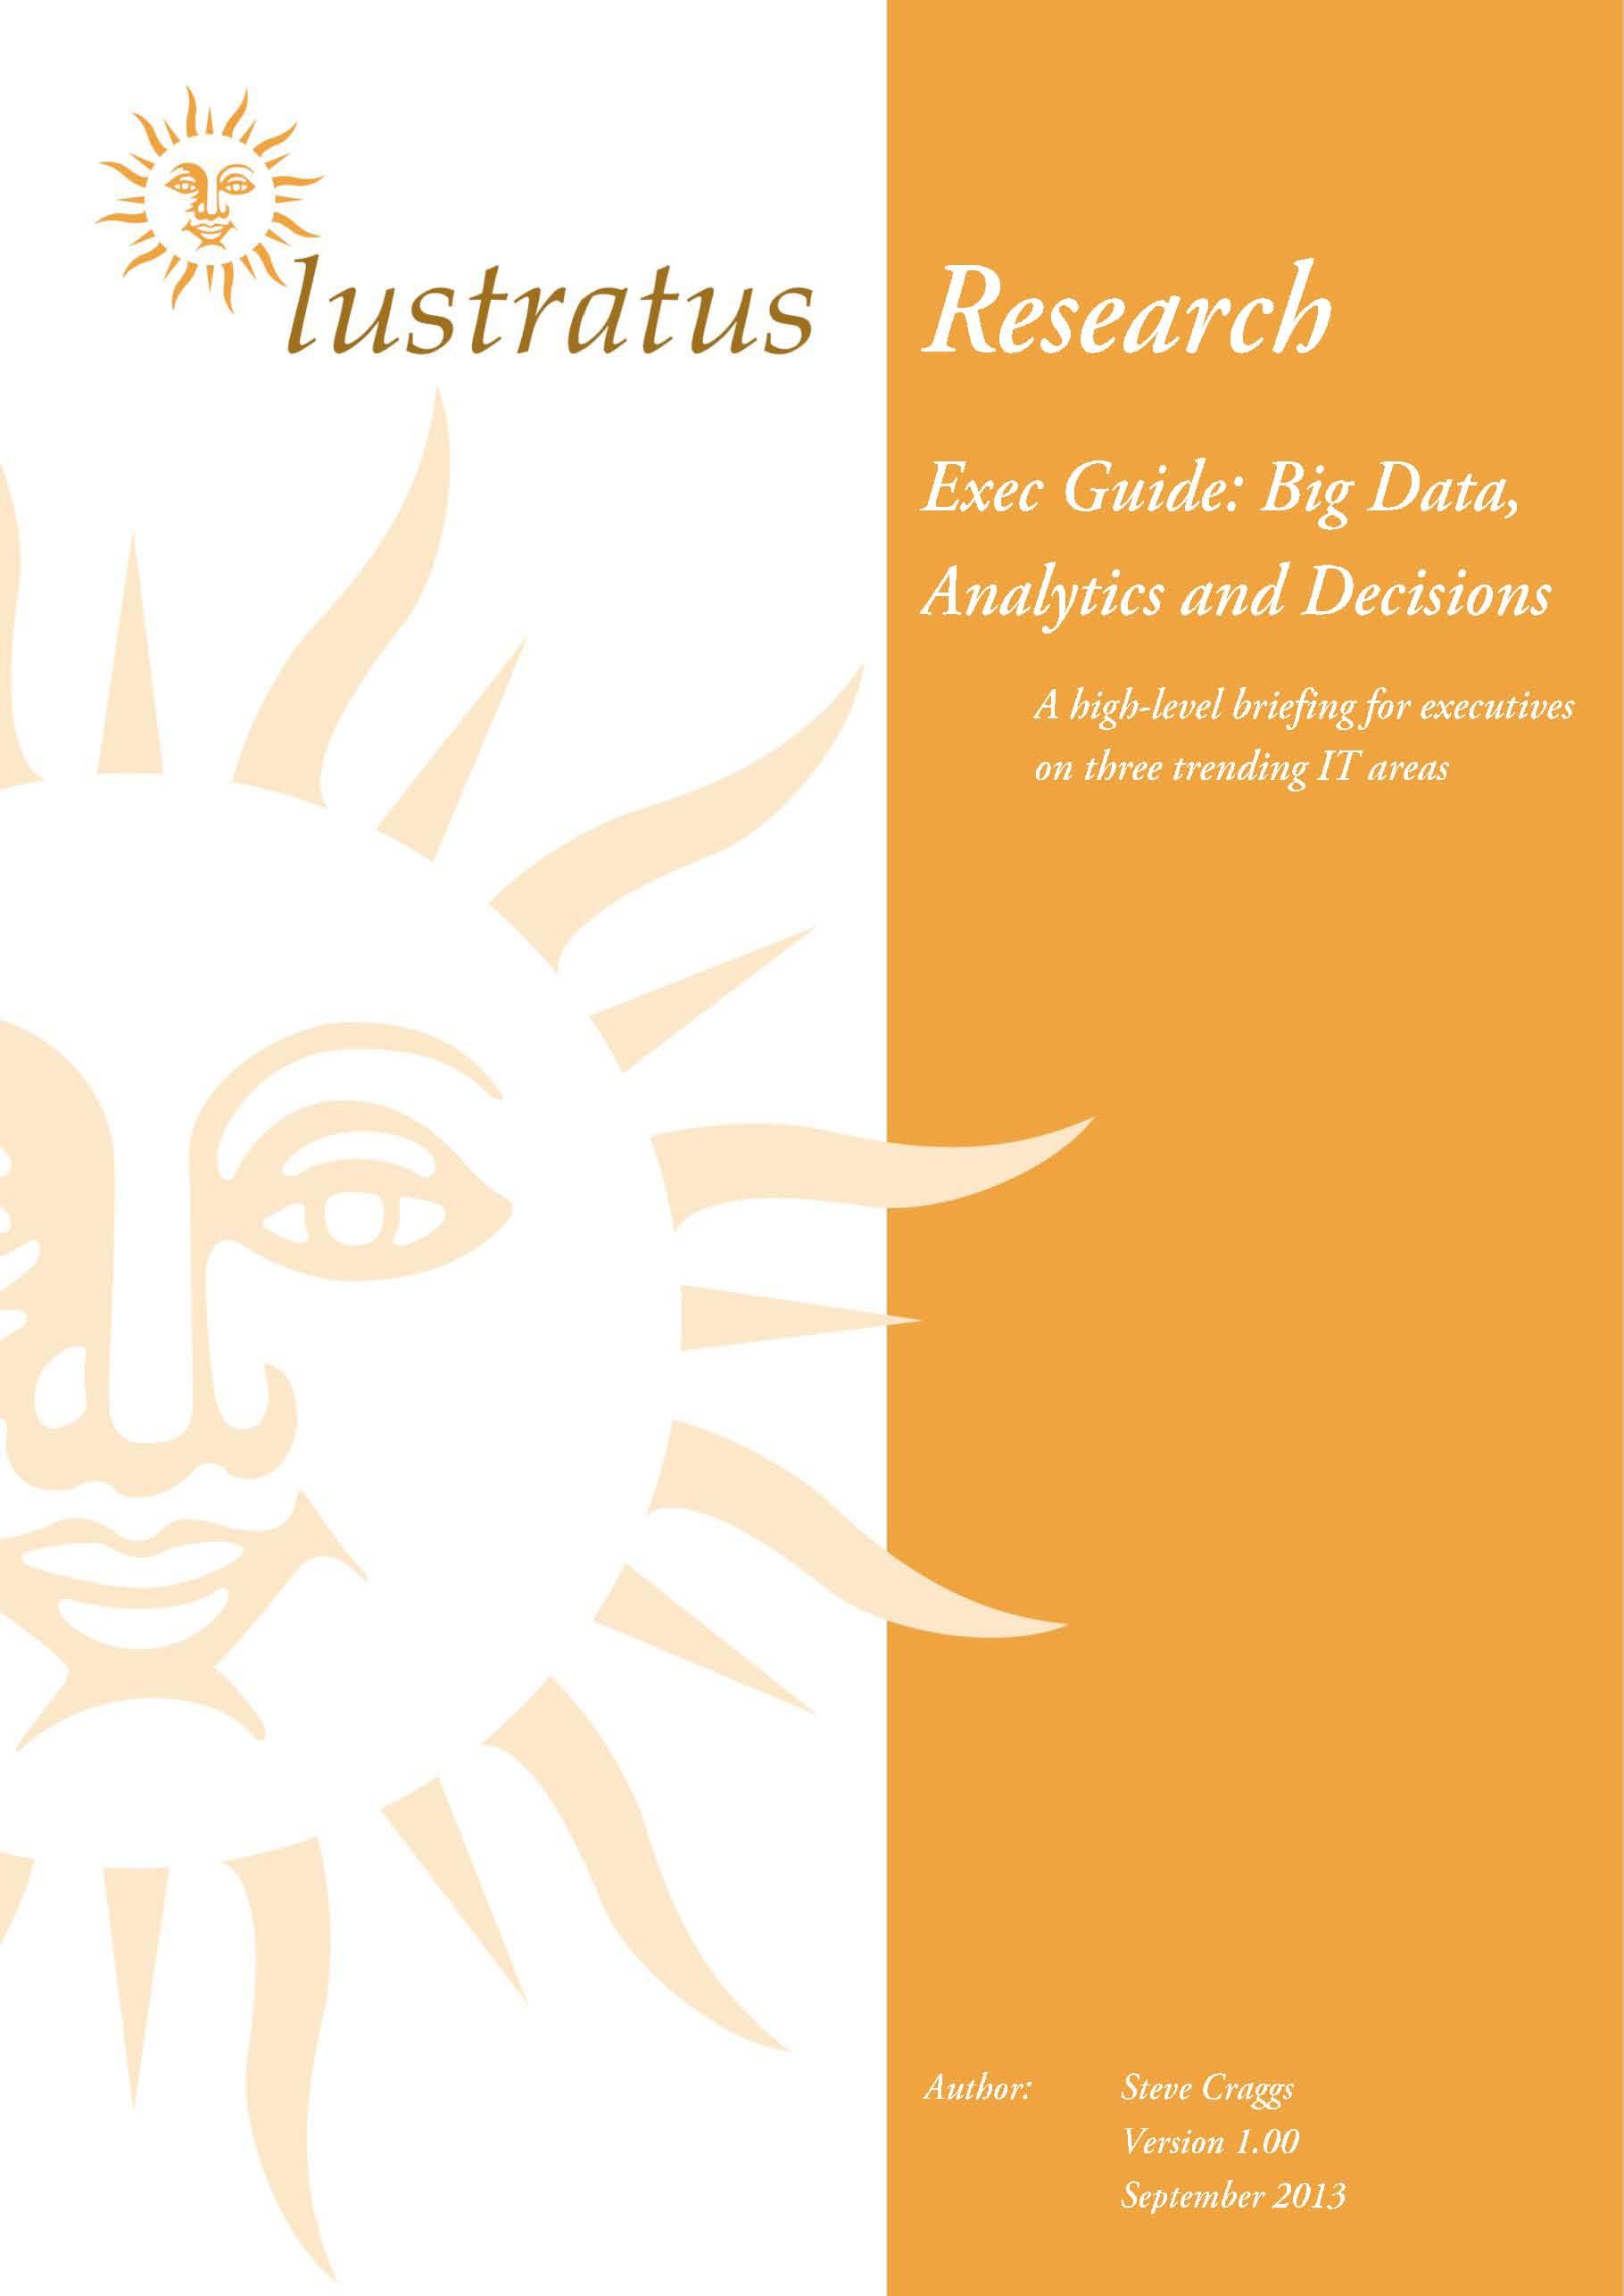 Exec Guide - Big Data, Analytics and Decisions